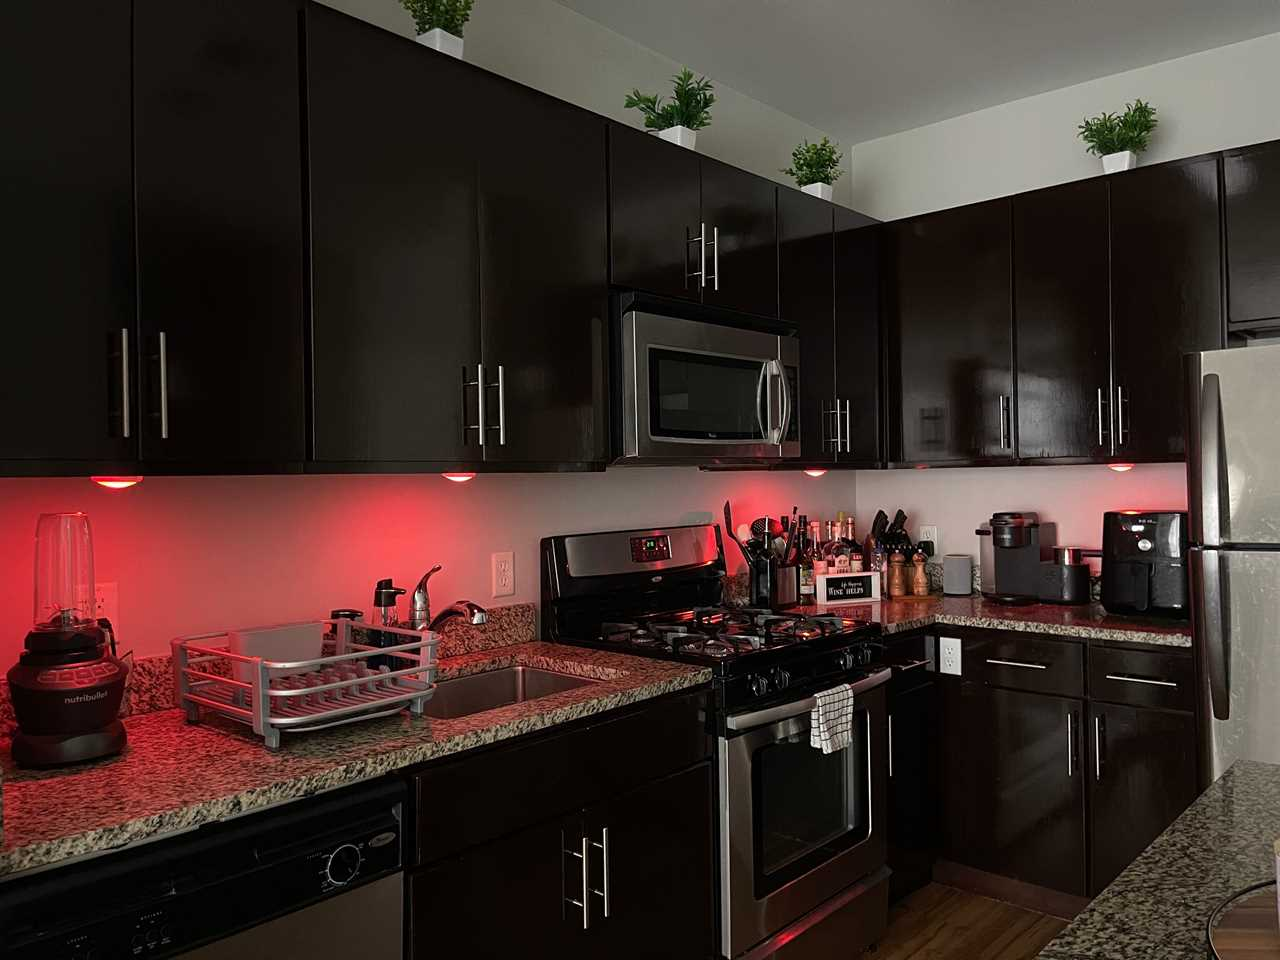 Red LED lights under cabinets illuminating the kitchen counter